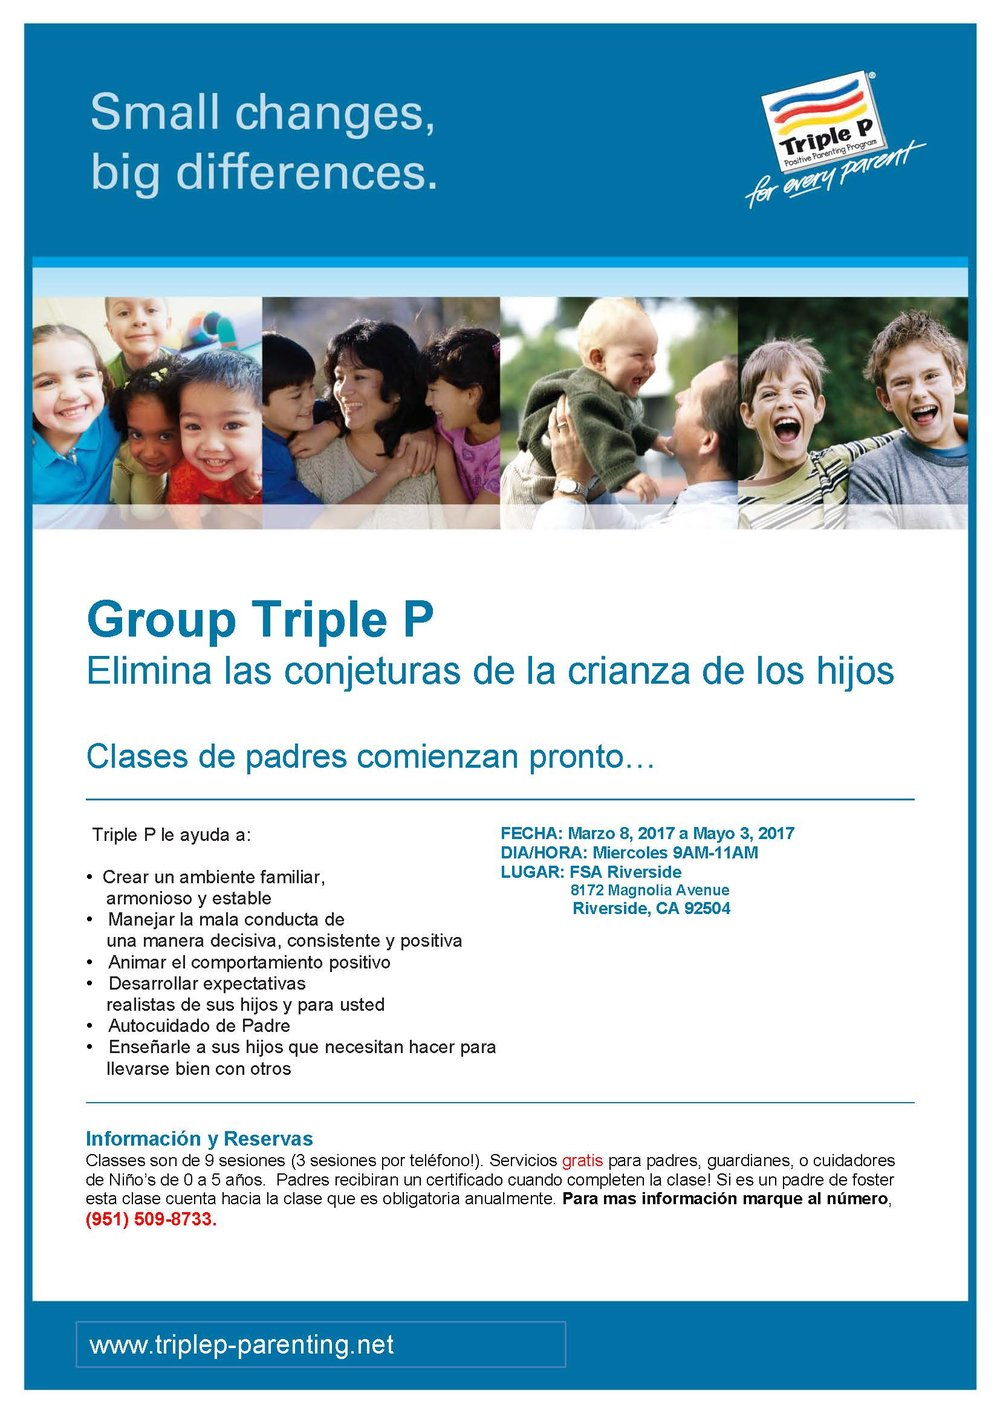 Group Triple P Flyer Spanish-Riverside March 2017.jpg